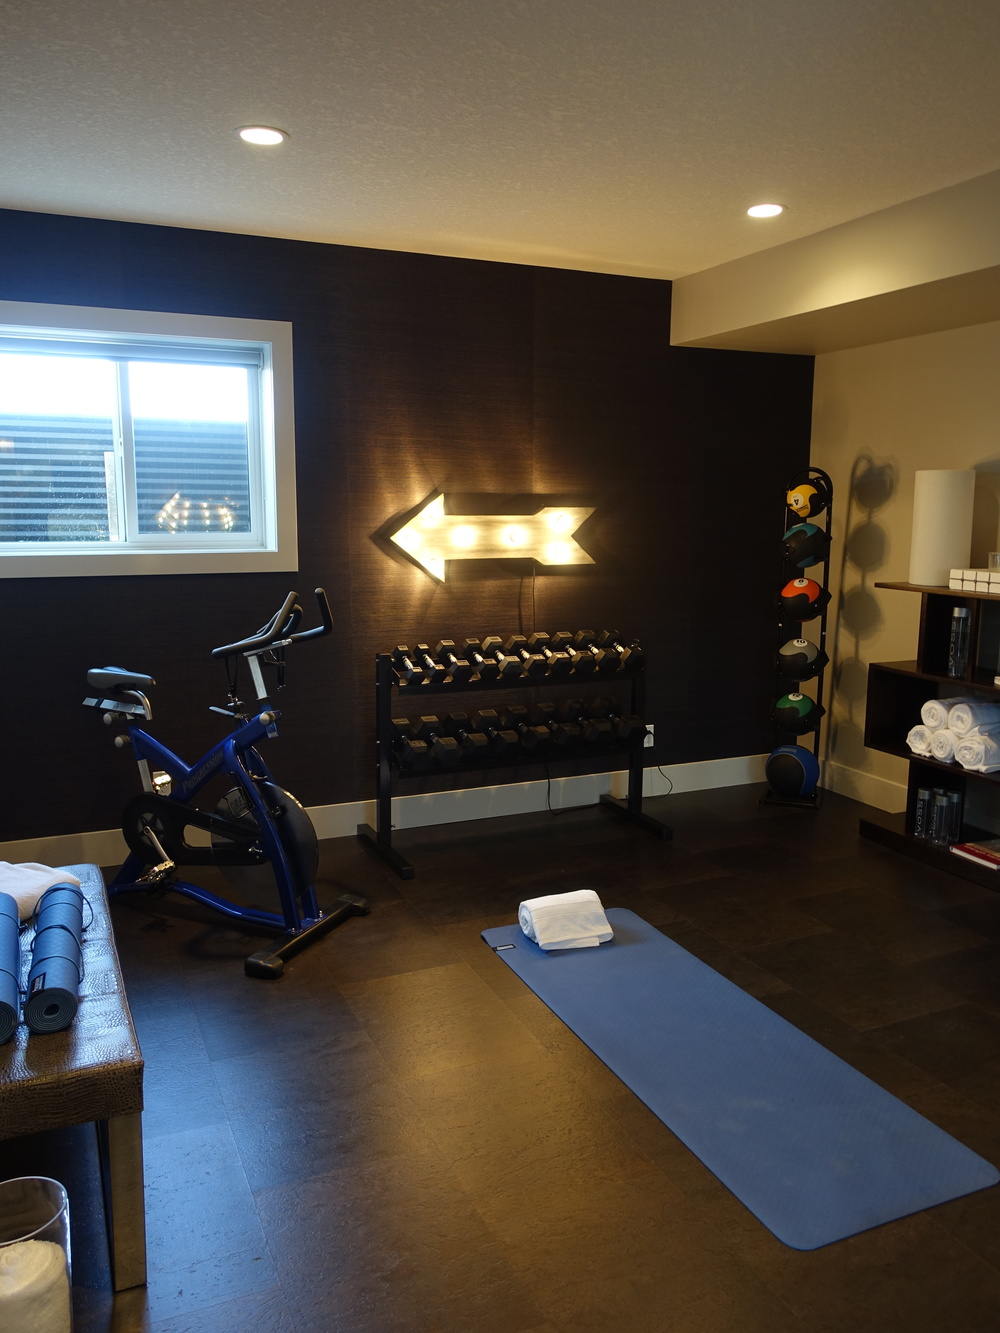 Imagine your own yoga workout studio.